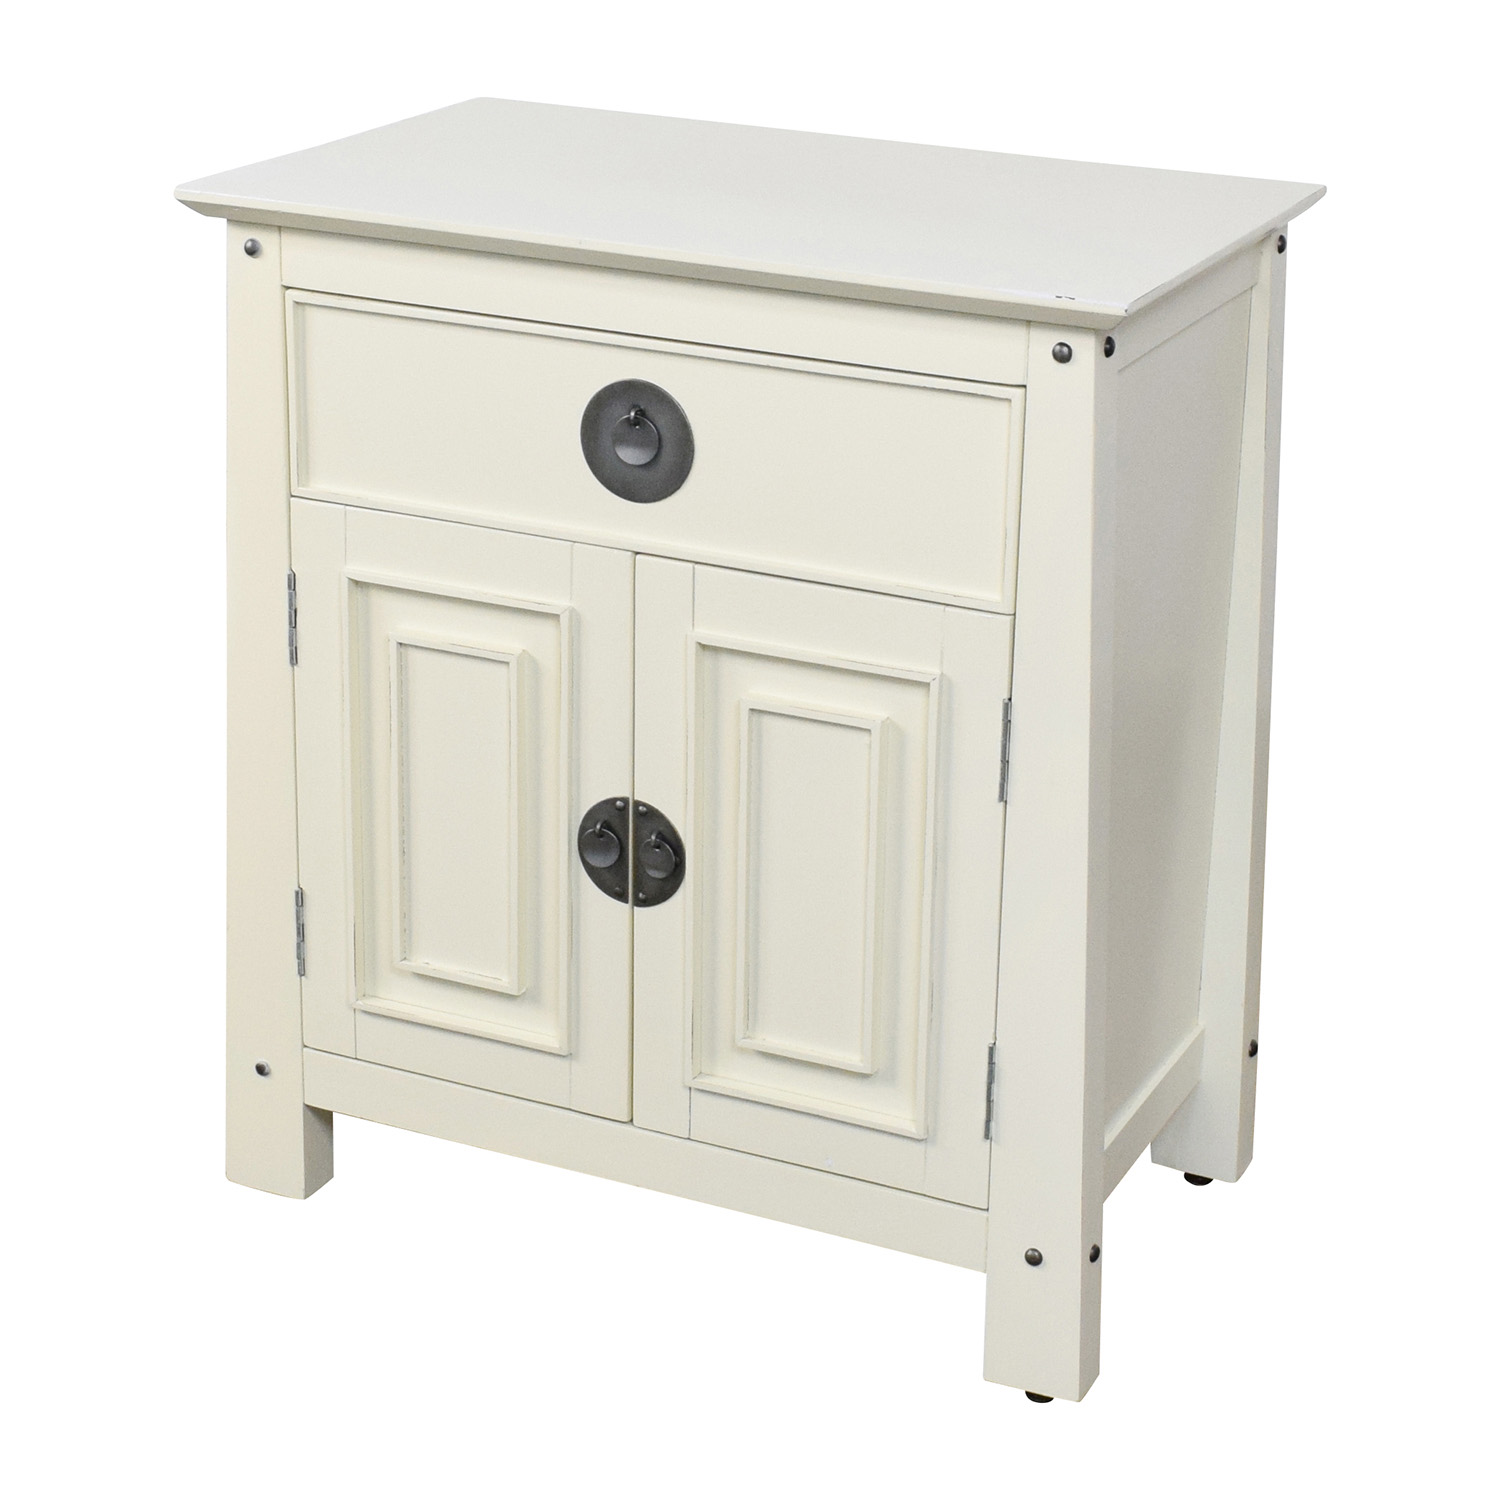 89 off pier 1 imports pier 1 imports shanghai collection bedside chest tables for Pier one shanghai bedroom furniture